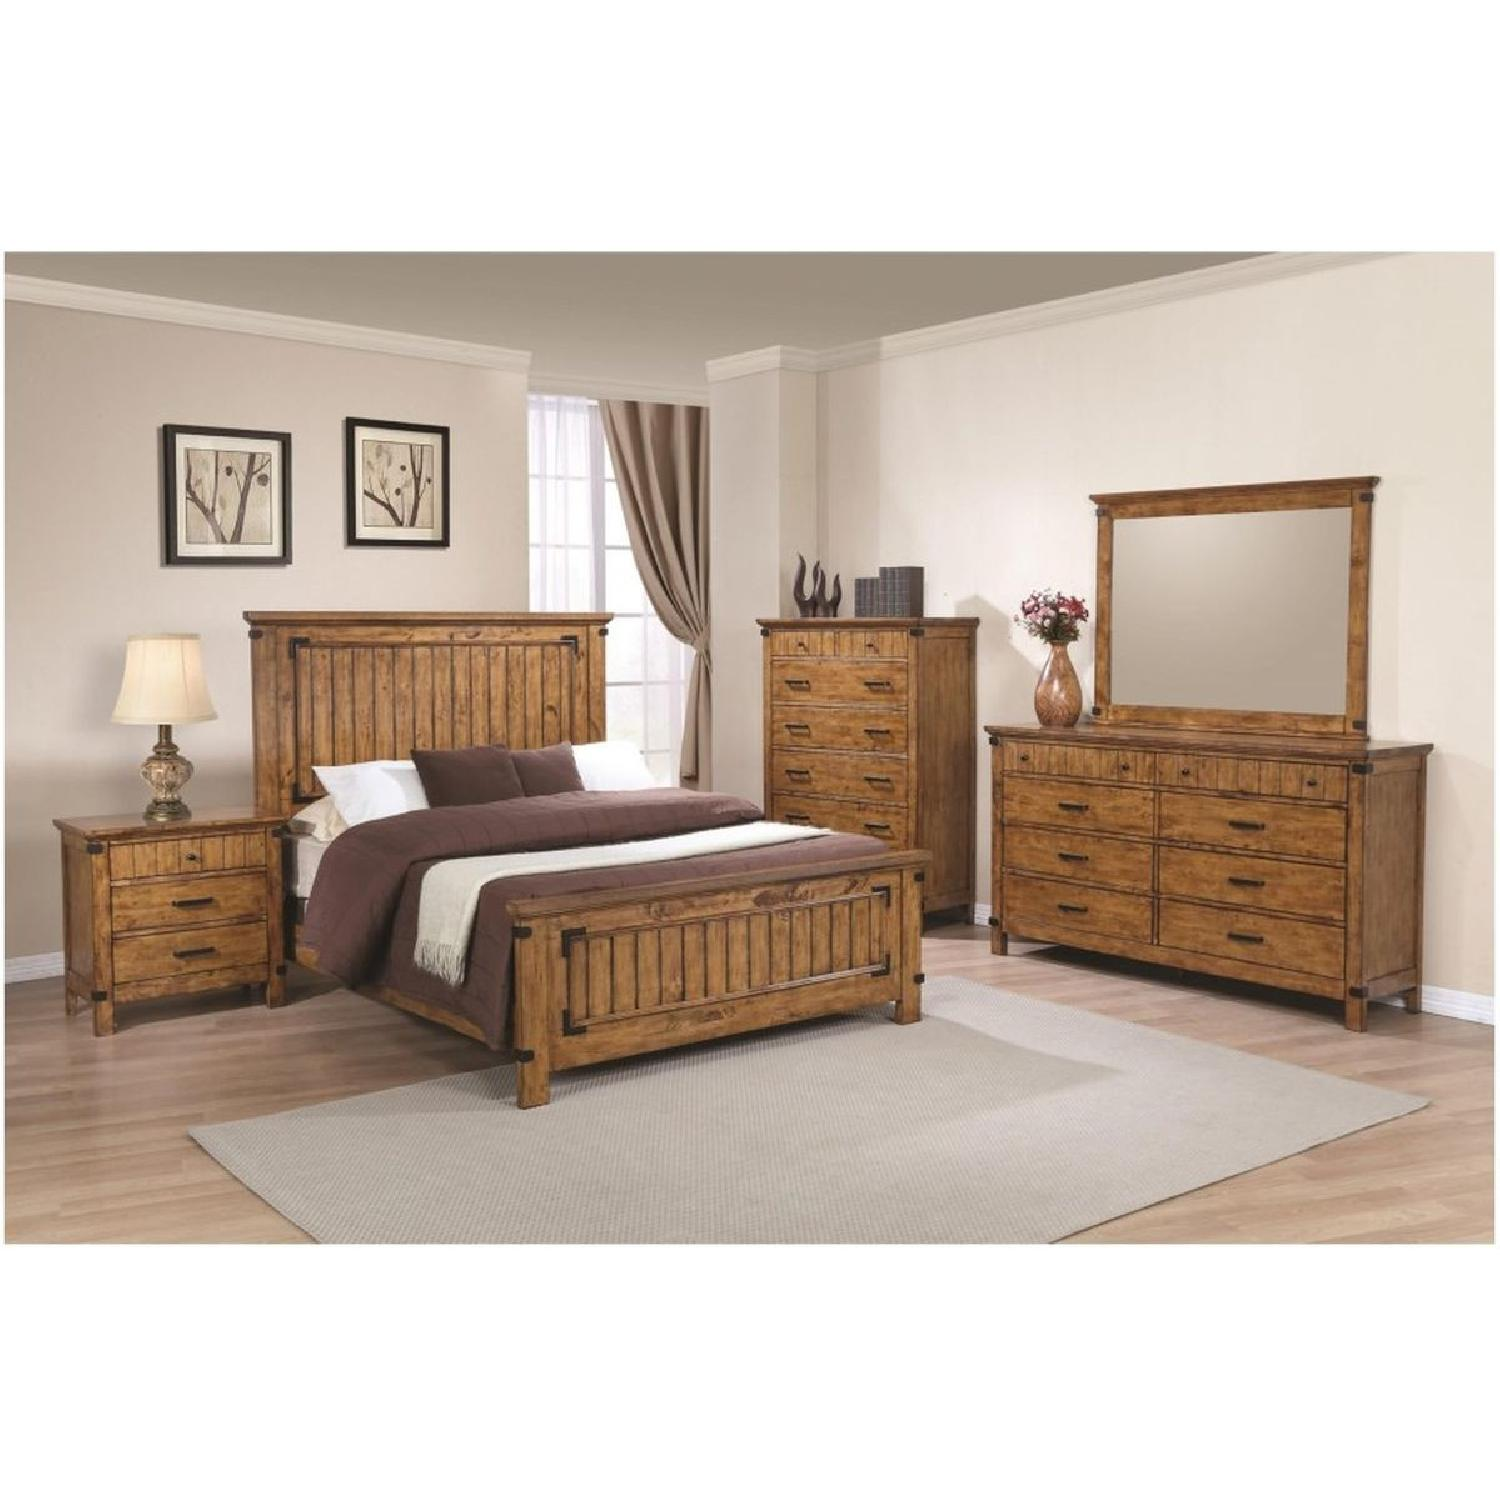 Rustic Style Dresser Bed in Warm Honey Brown Finish - image-3